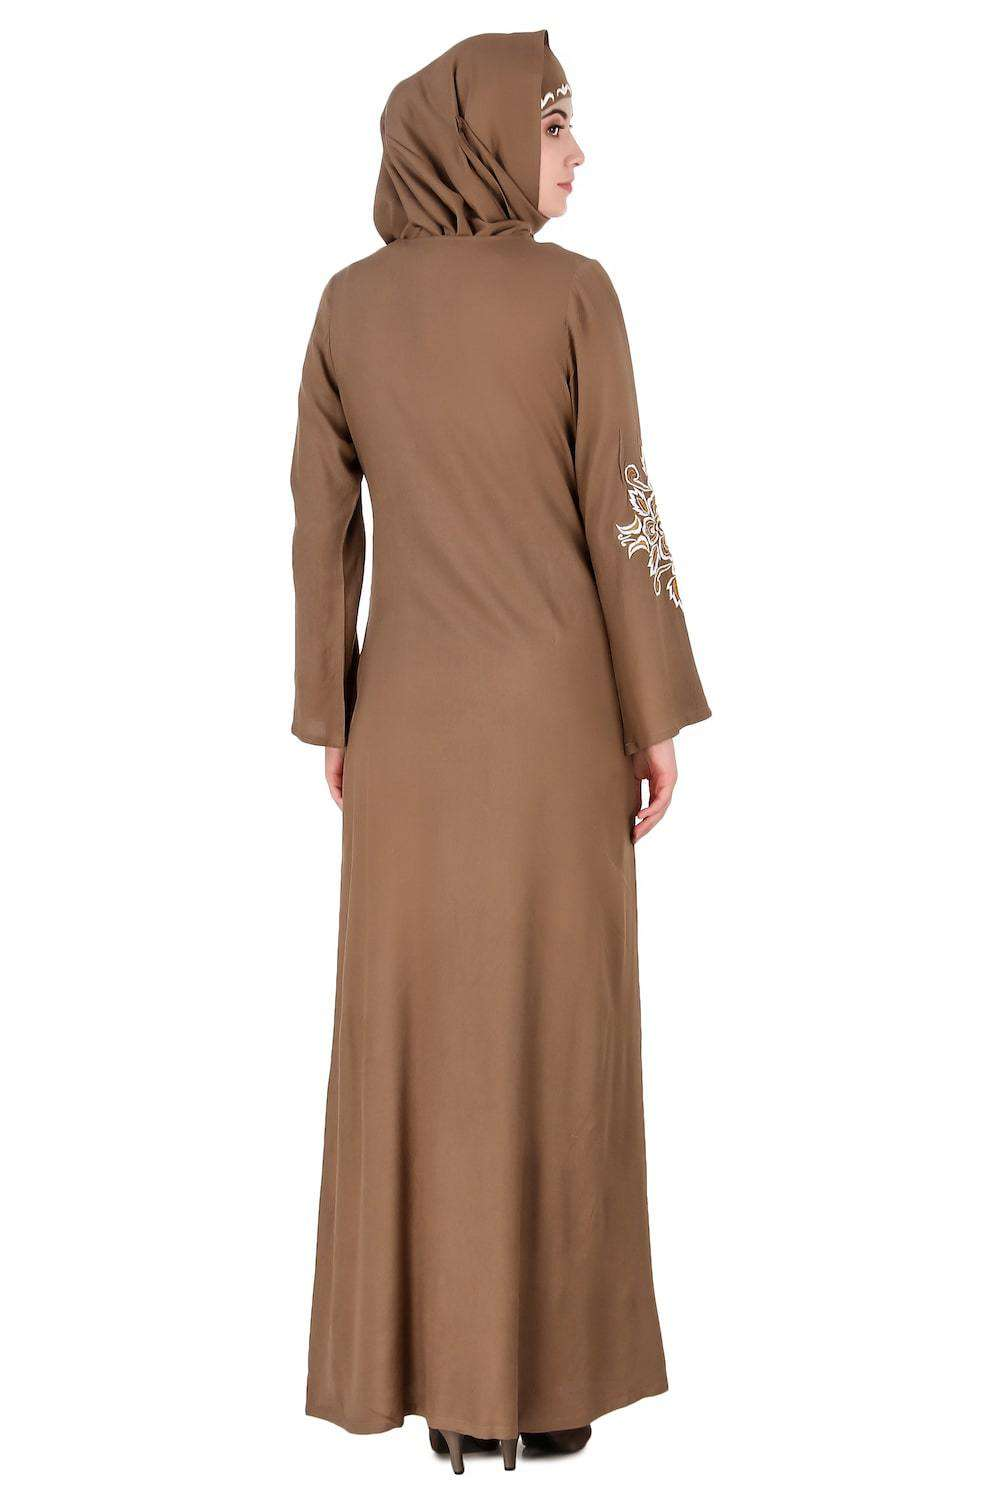 Floral Diamond Cut Festive Abaya